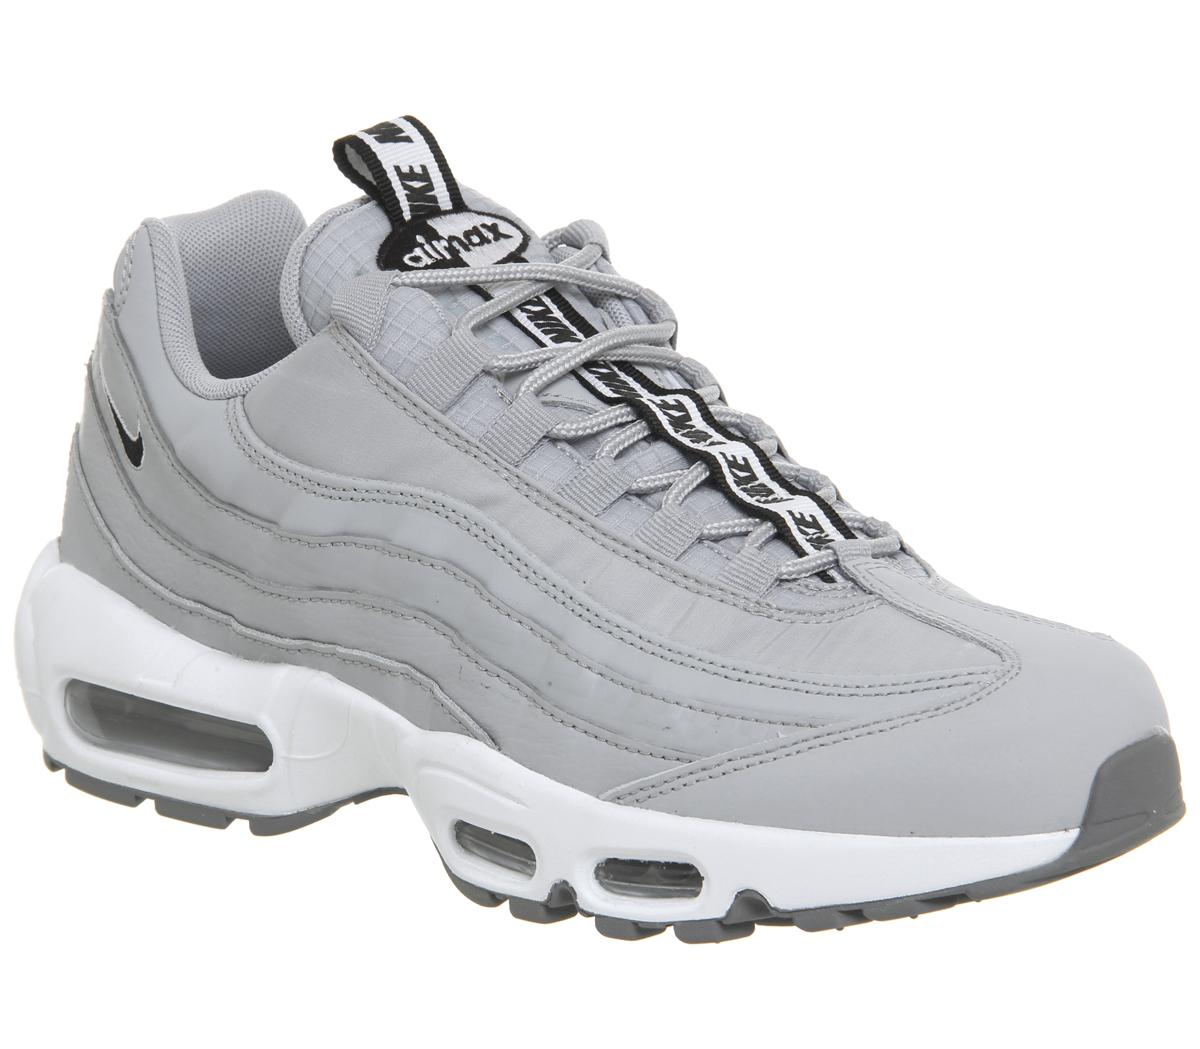 Al borde hemisferio marca  Nike Air Max 95 Trainers Wolf Grey Black White Cool Grey - His trainers